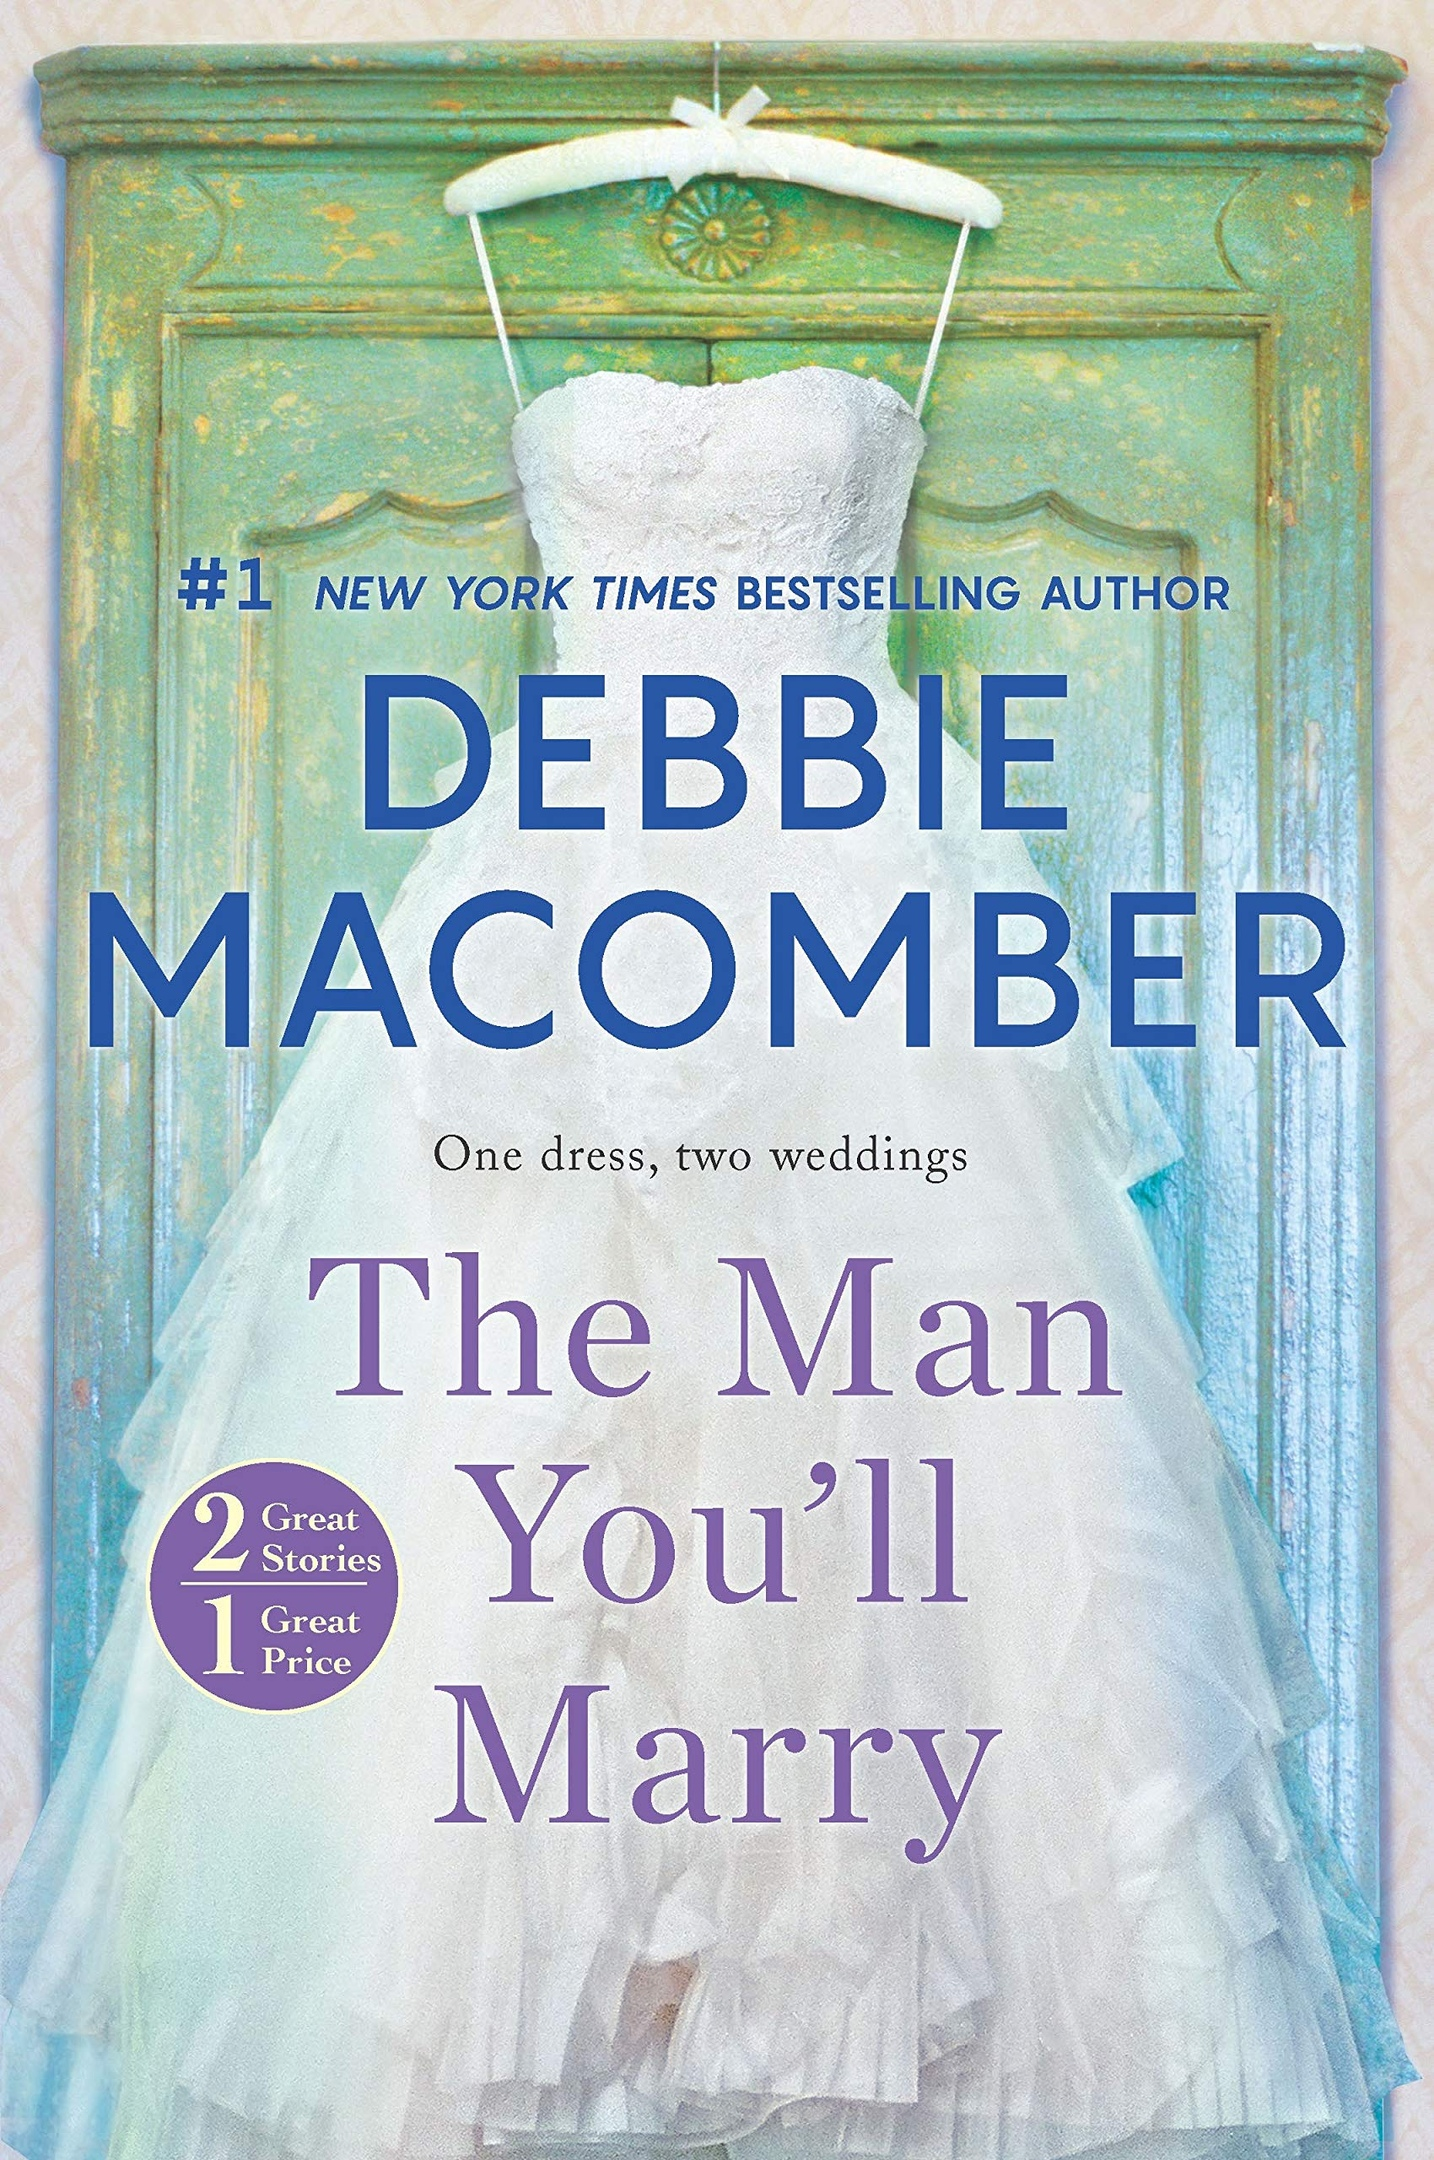 Debbie Macomber – The Man You'll Marry